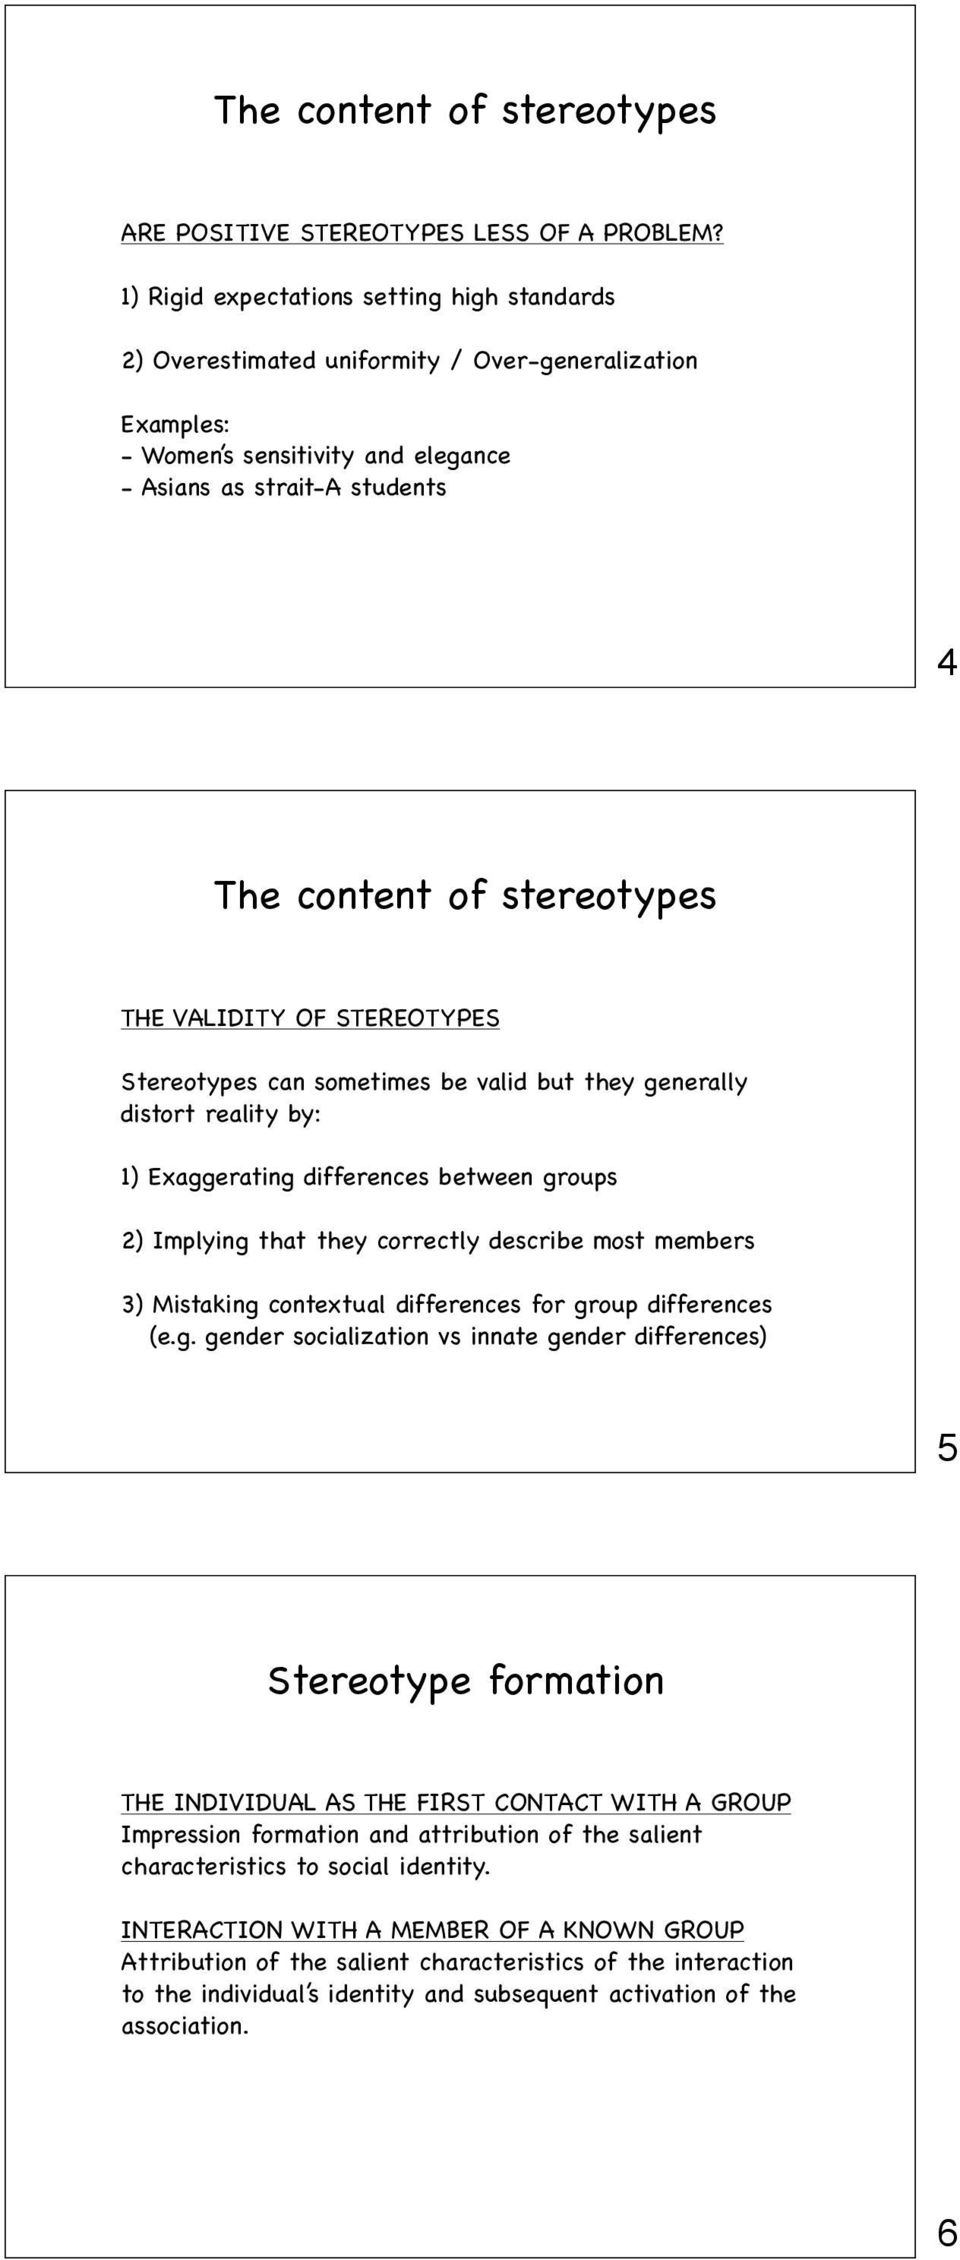 THE VALIDITY OF STEREOTYPES Stereotypes can sometimes be valid but they generally distort reality by: 1) Exaggerating differences between groups 2) Implying that they correctly describe most members